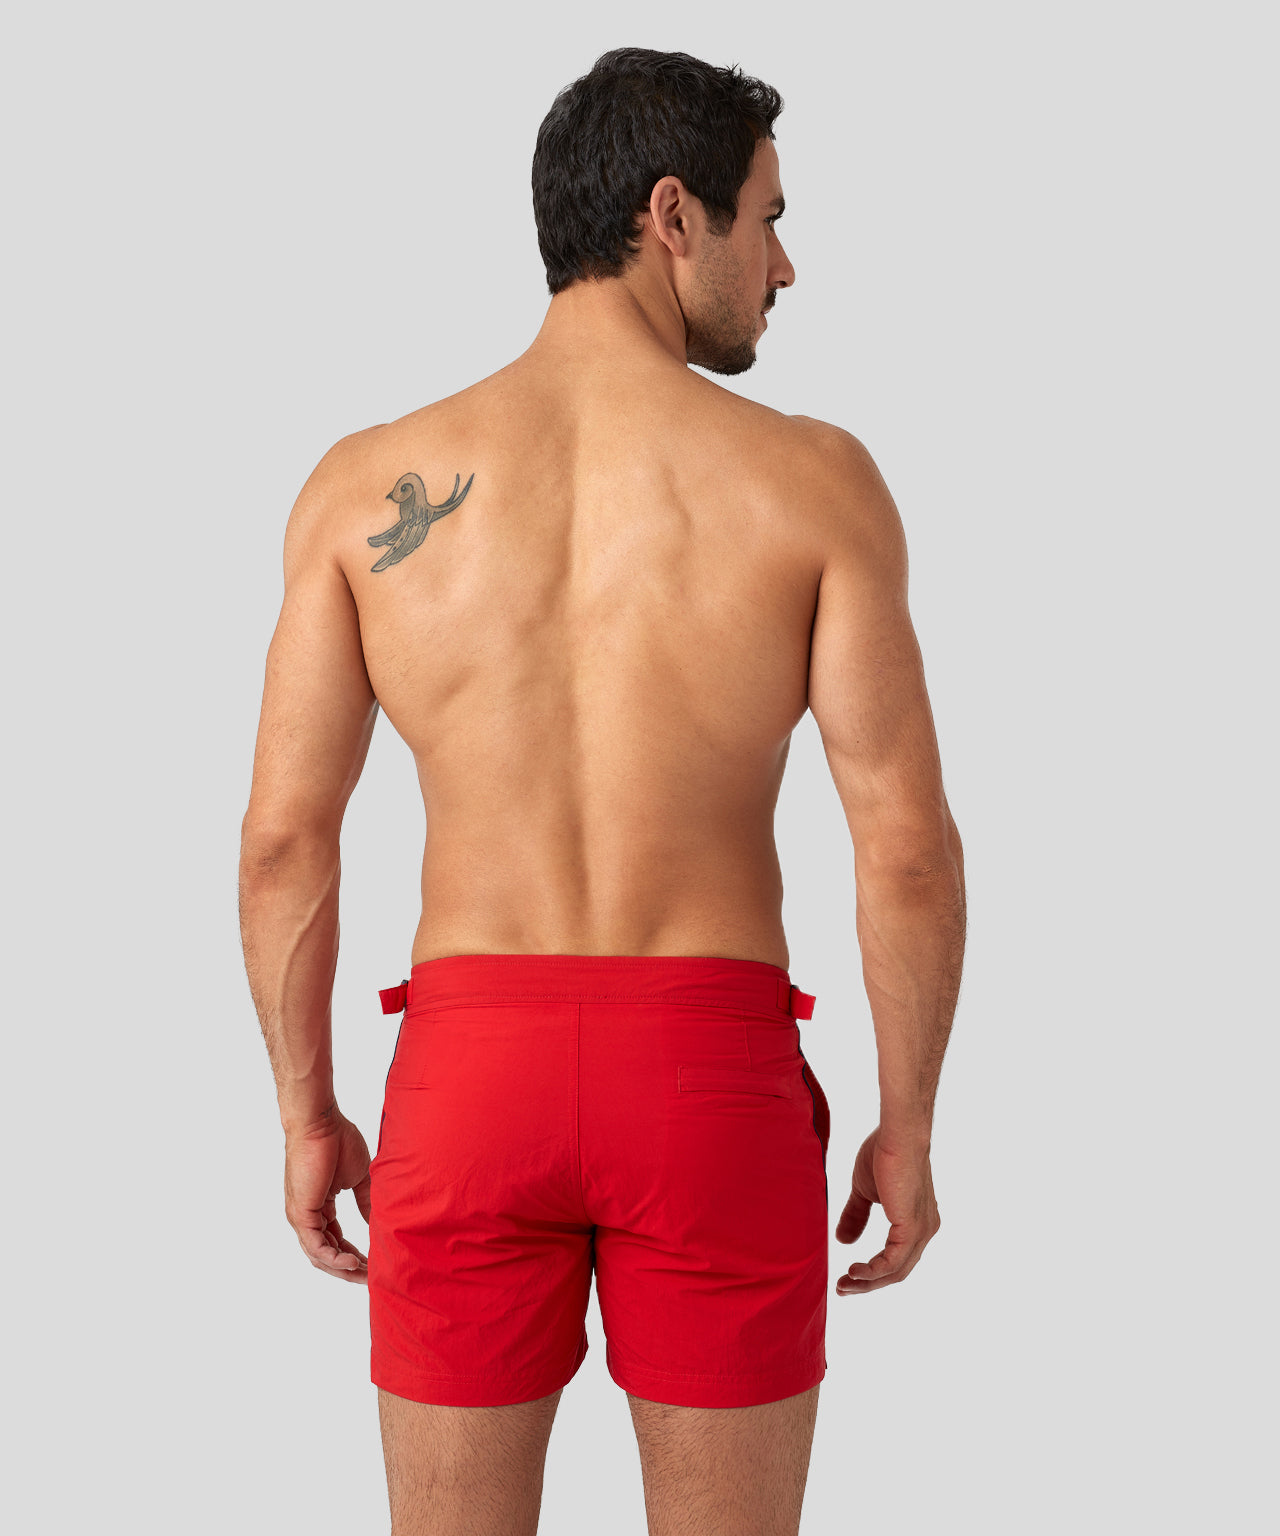 Urban Swim Shorts - red/navy